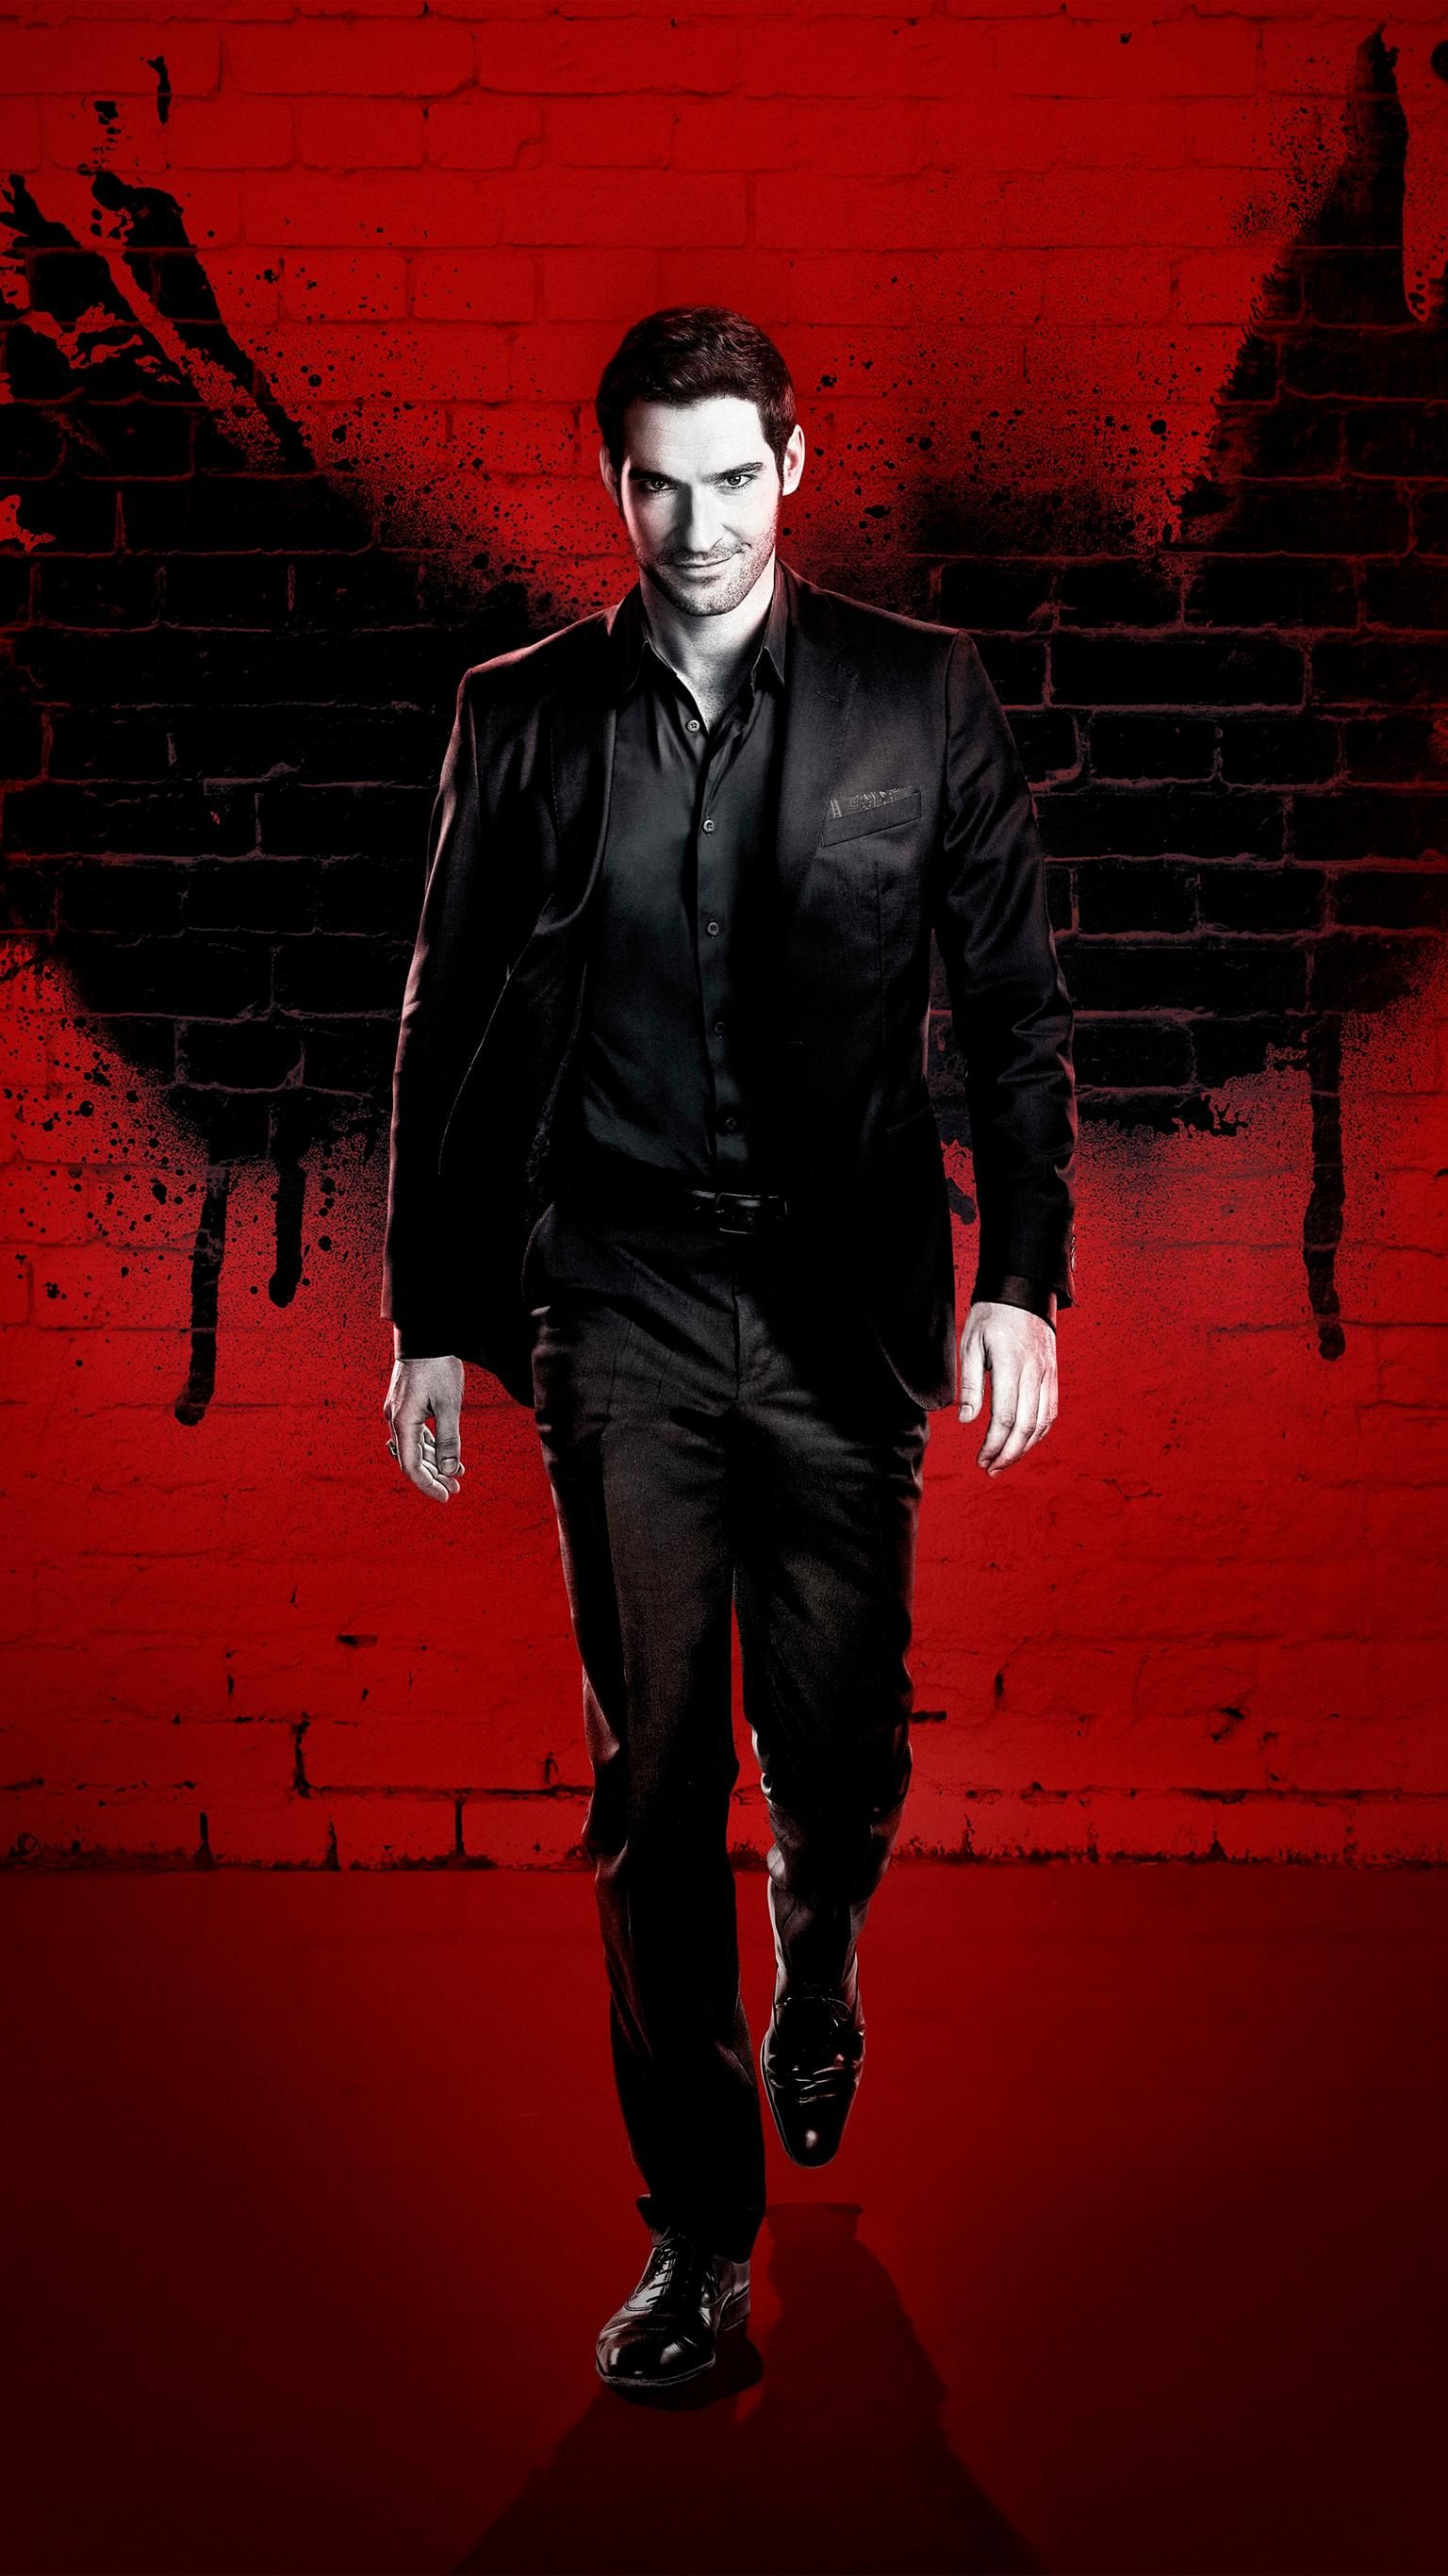 Lucifer Phone Wallpaper Moviemania Lucifer Morningstar Lucifer Tom Ellis Lucifer